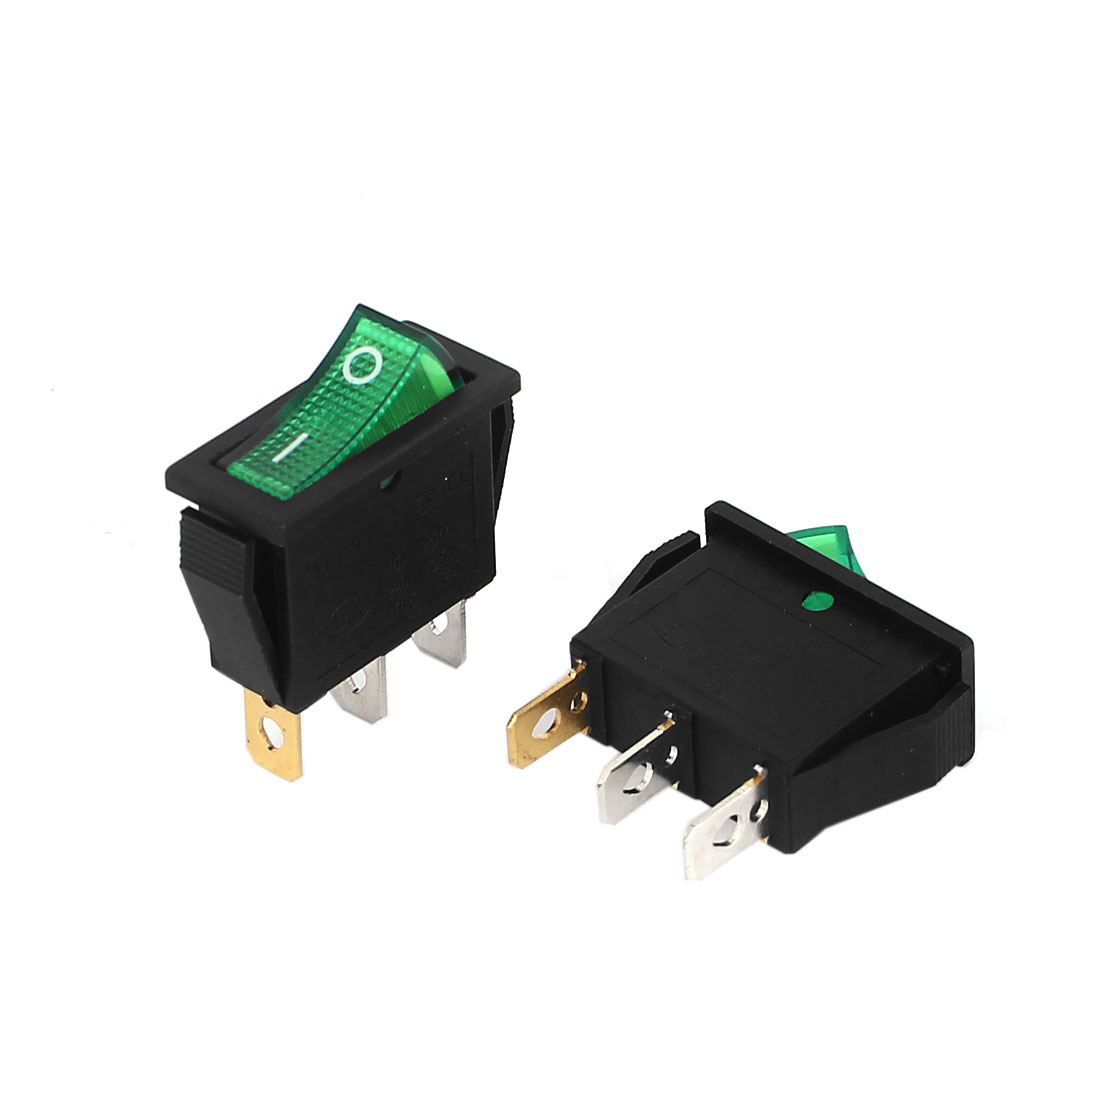 Unique Bargains 15A/250V 20A/125V AC SPST O/F Neon Lamp Rocker Switch 2 Pcs